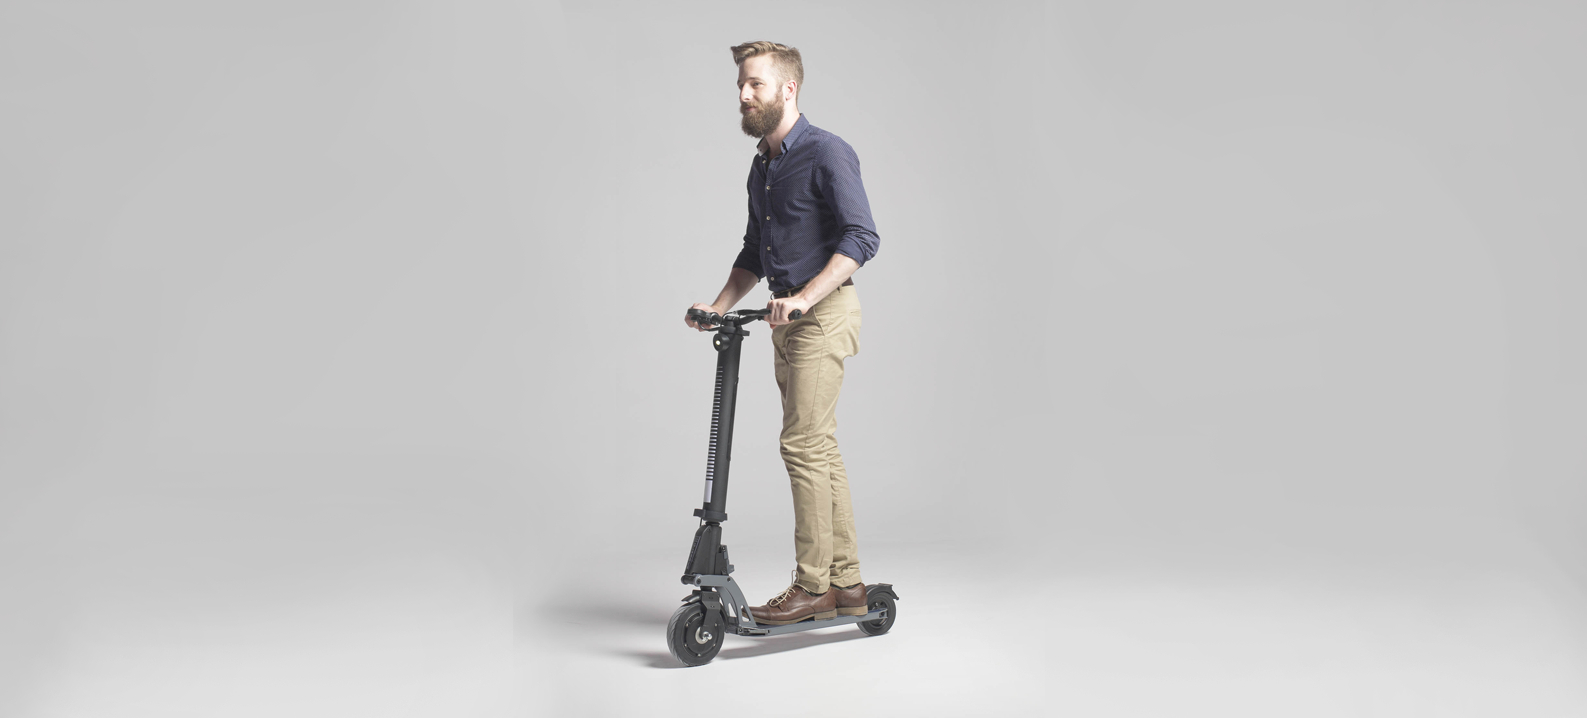 Cover image of Electric Scooter For Adults Buying Guide.